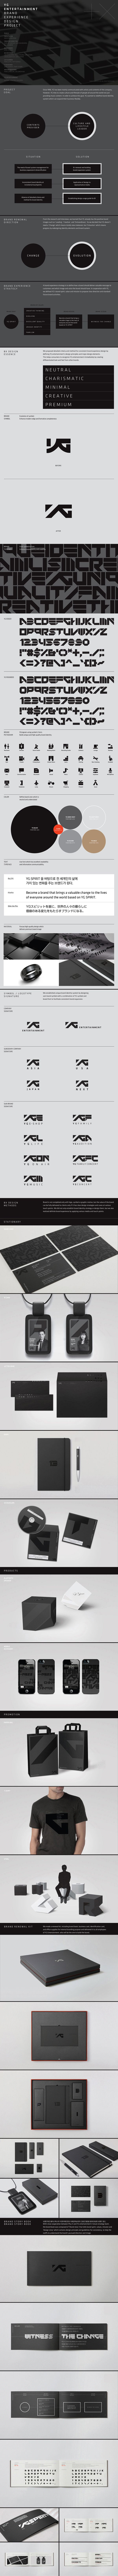 YG Entertainment - Brand Renewal | Designer: Plus X